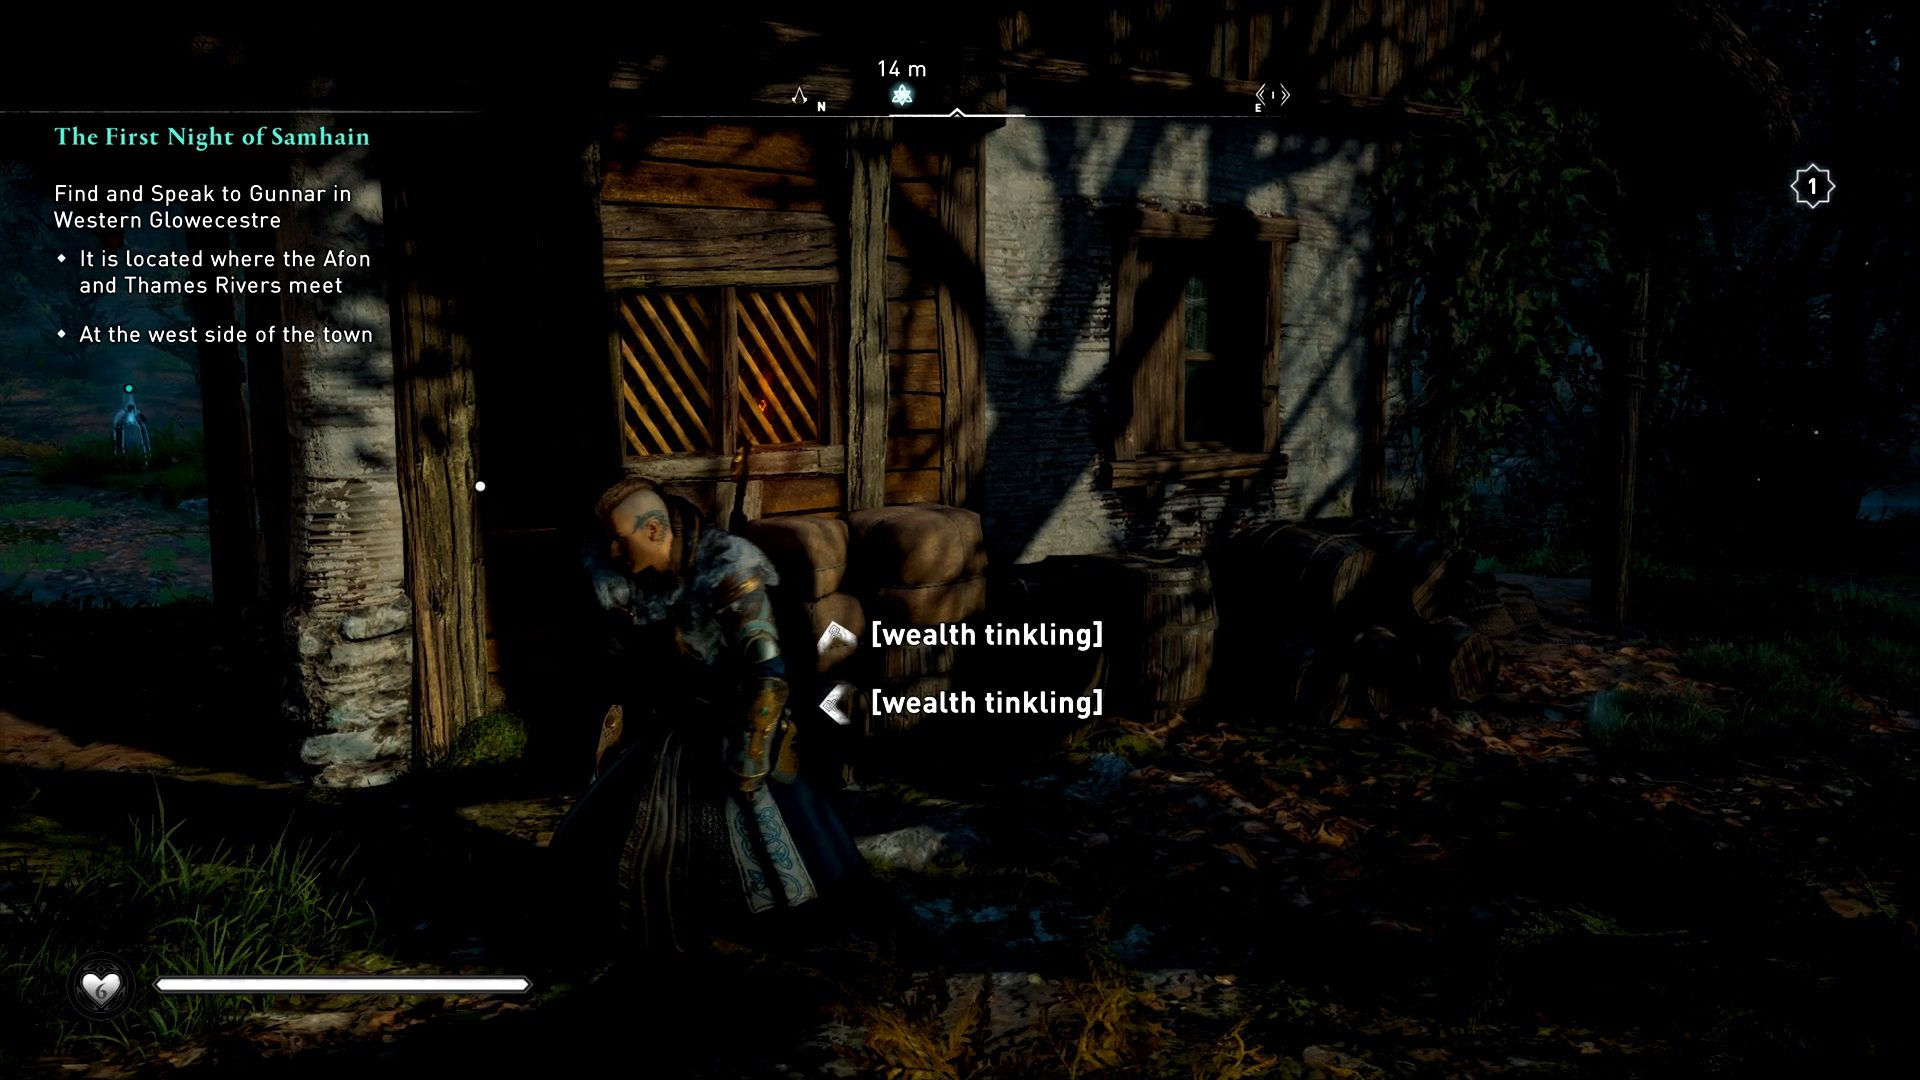 Assassin's Creed Valhalla Unlock Strange Woman House